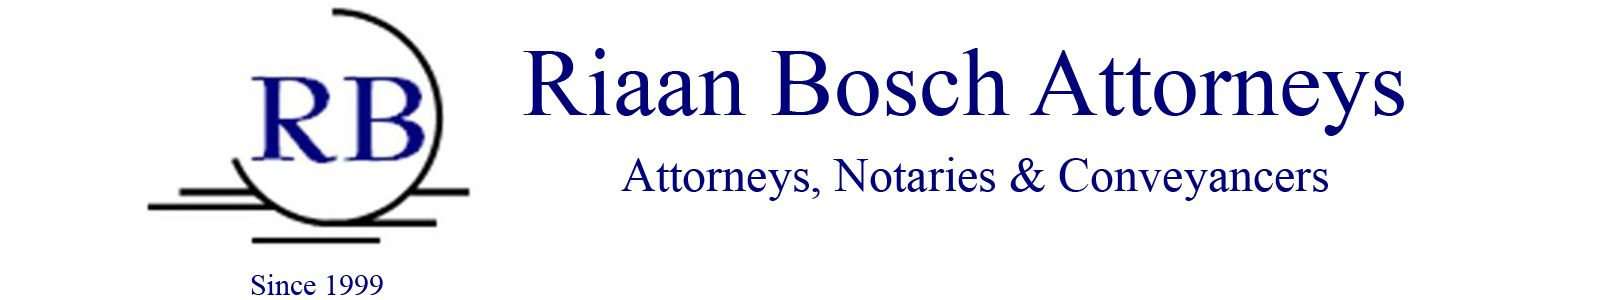 Riaan Bosch Attorneys logo